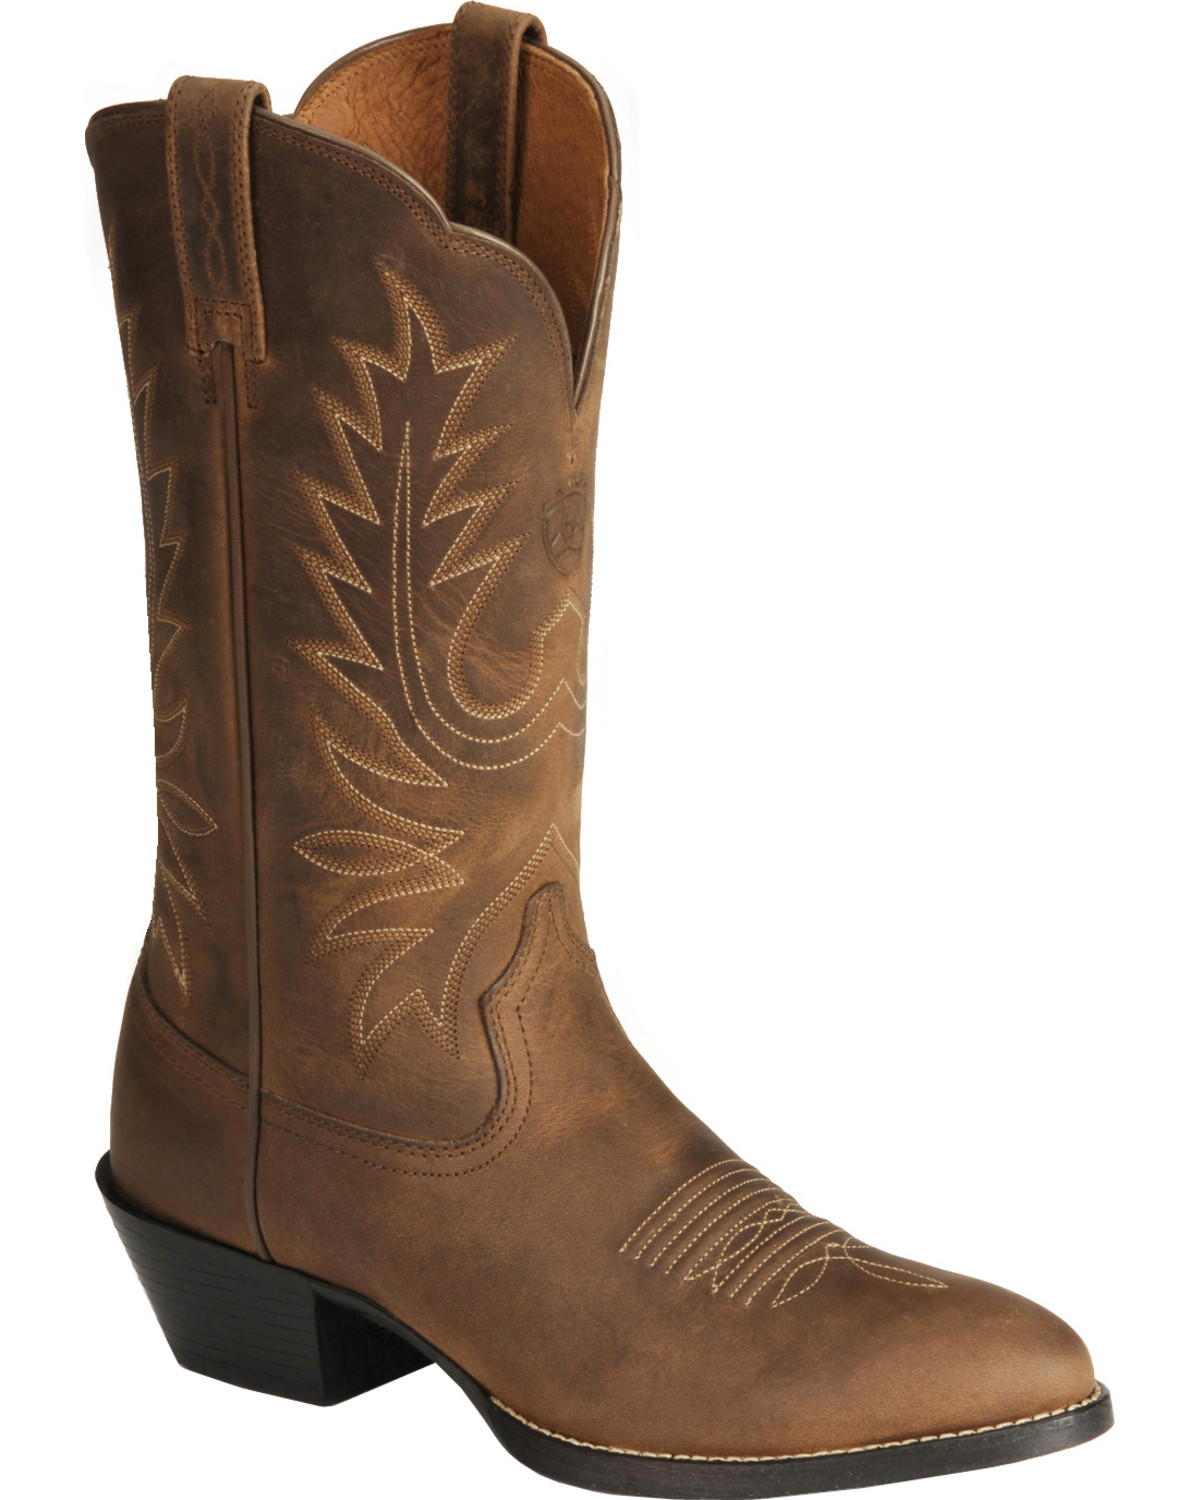 sheplers western wear Welcome to increases-past.ml, the #1 western wear and boot store on the web. We have the world's largest collection of cowboy apparel and outdoor work clothes with over 27, Styles & 14,, items.